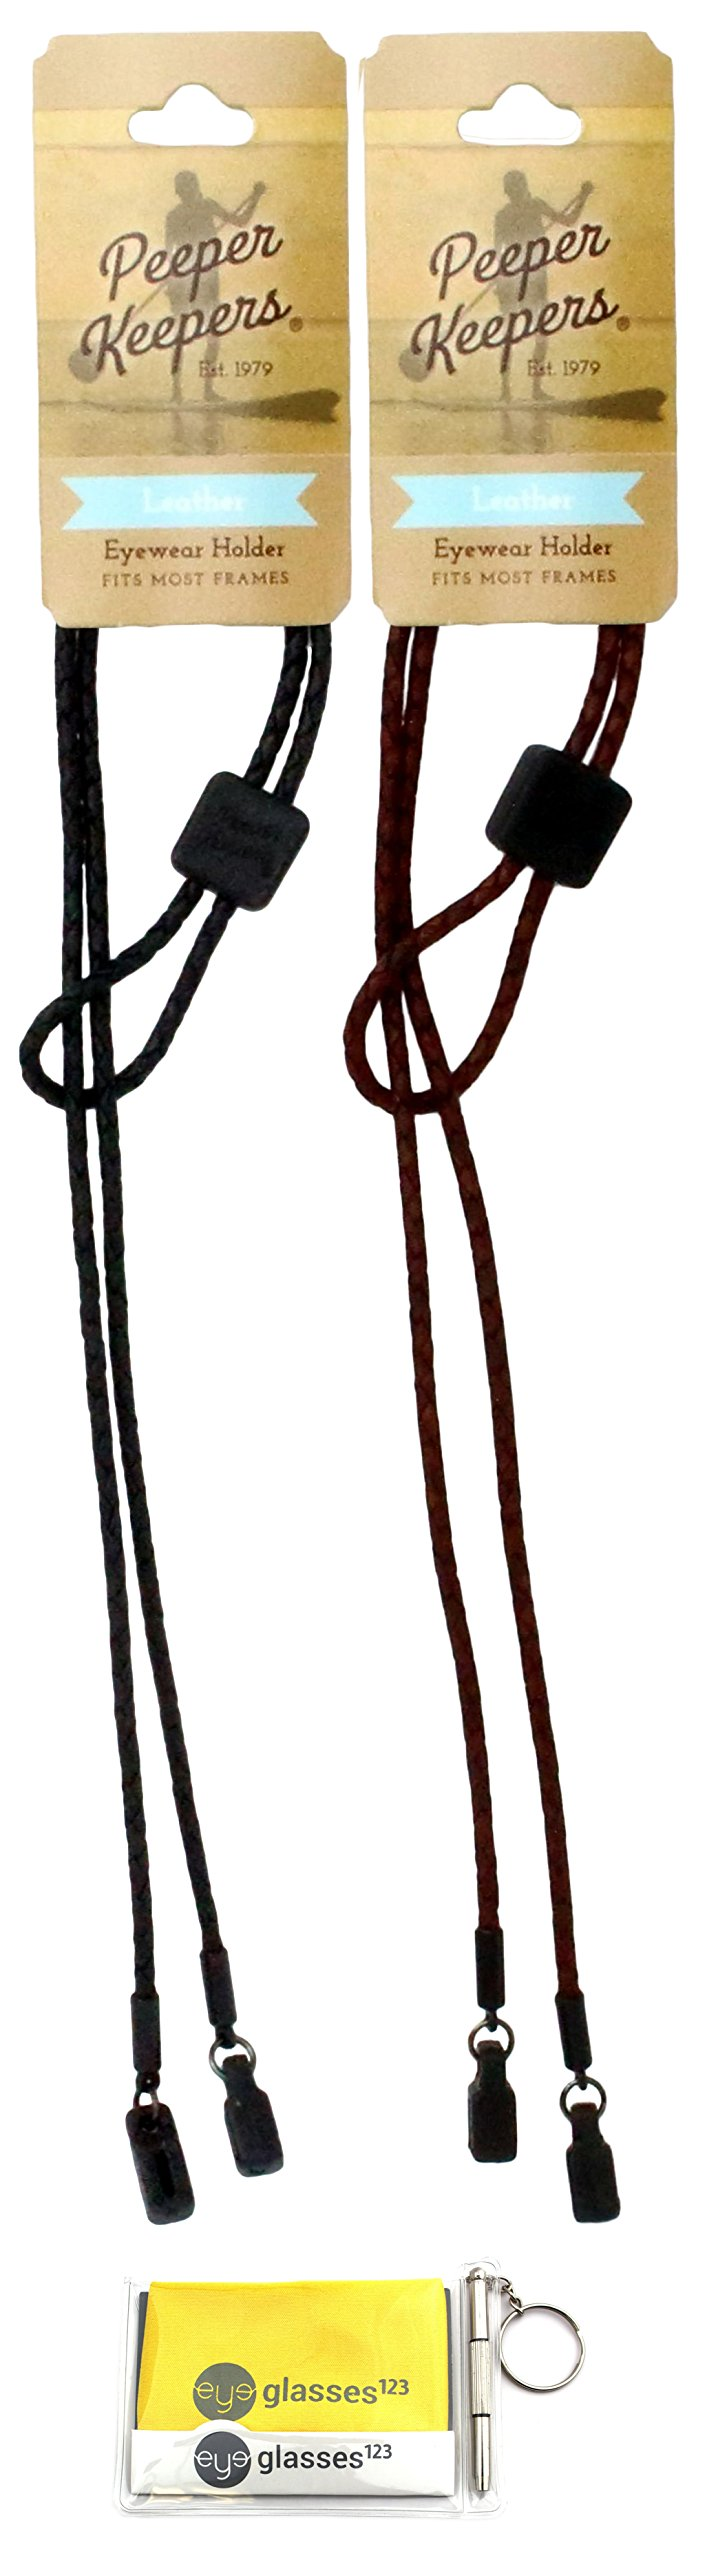 Peeper Keepers Braided Leather Adjustable Eyeglass Retainer, Black and Light Brown, 2 pack mix, w/Cloth & Screwdriver